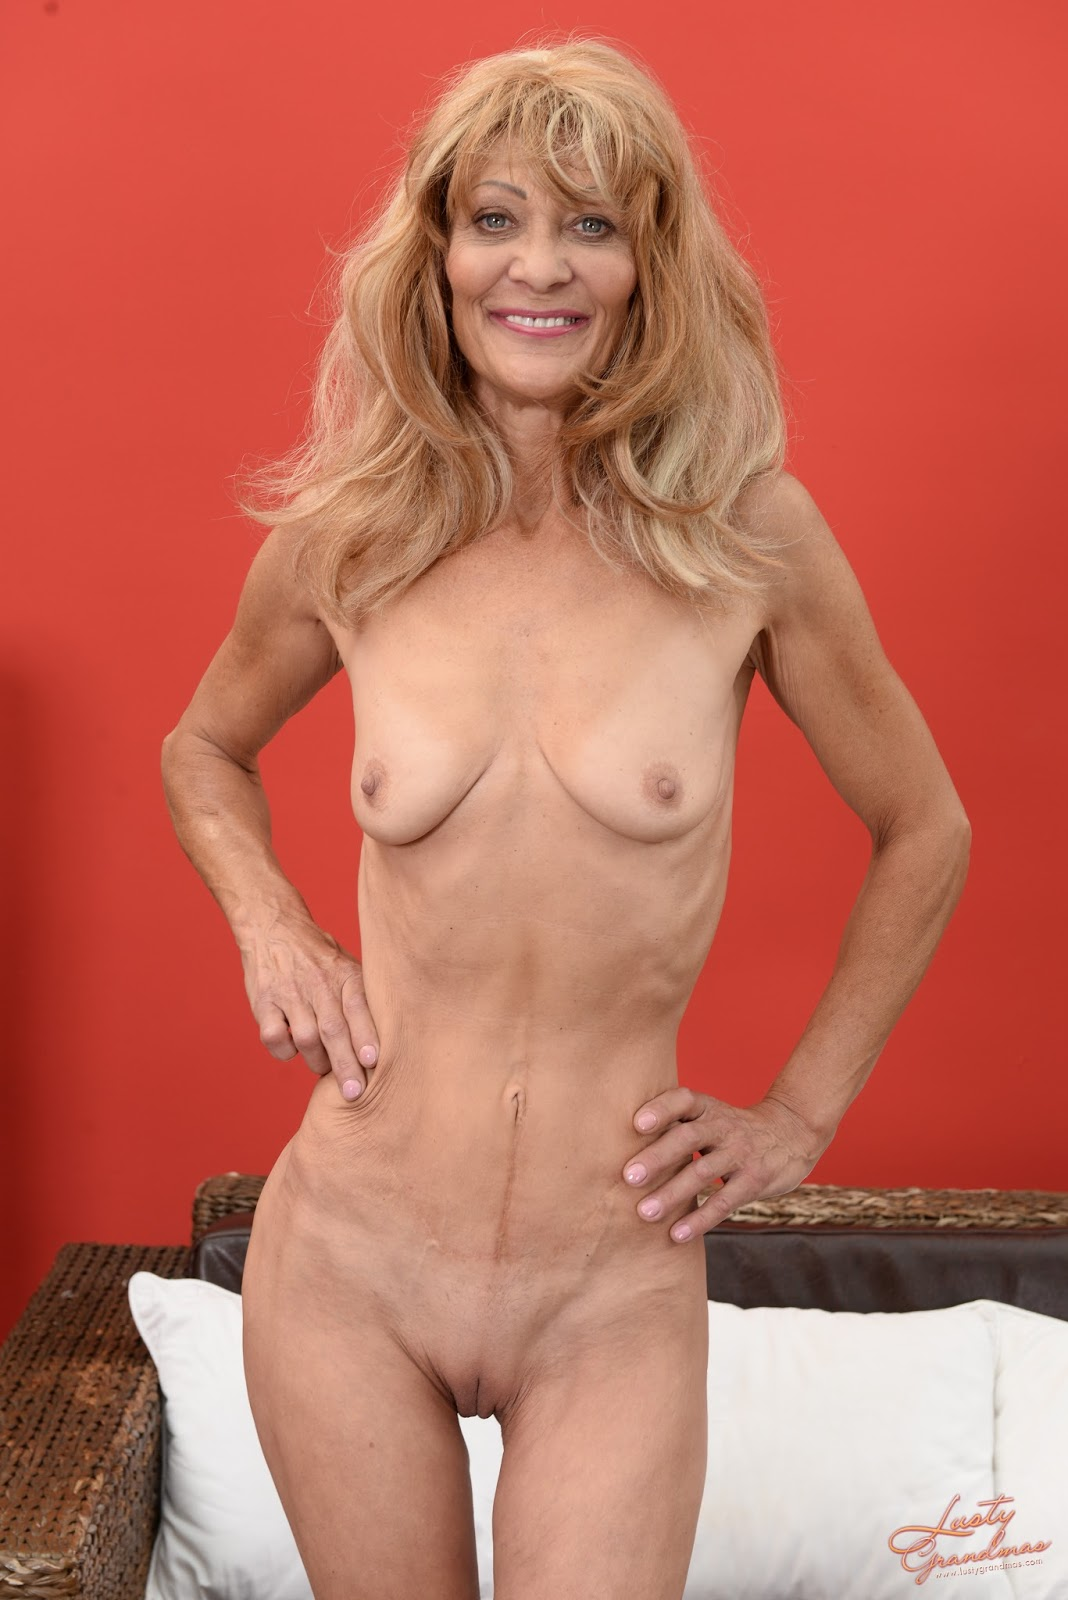 Remarkable, rather Hot naked gilf